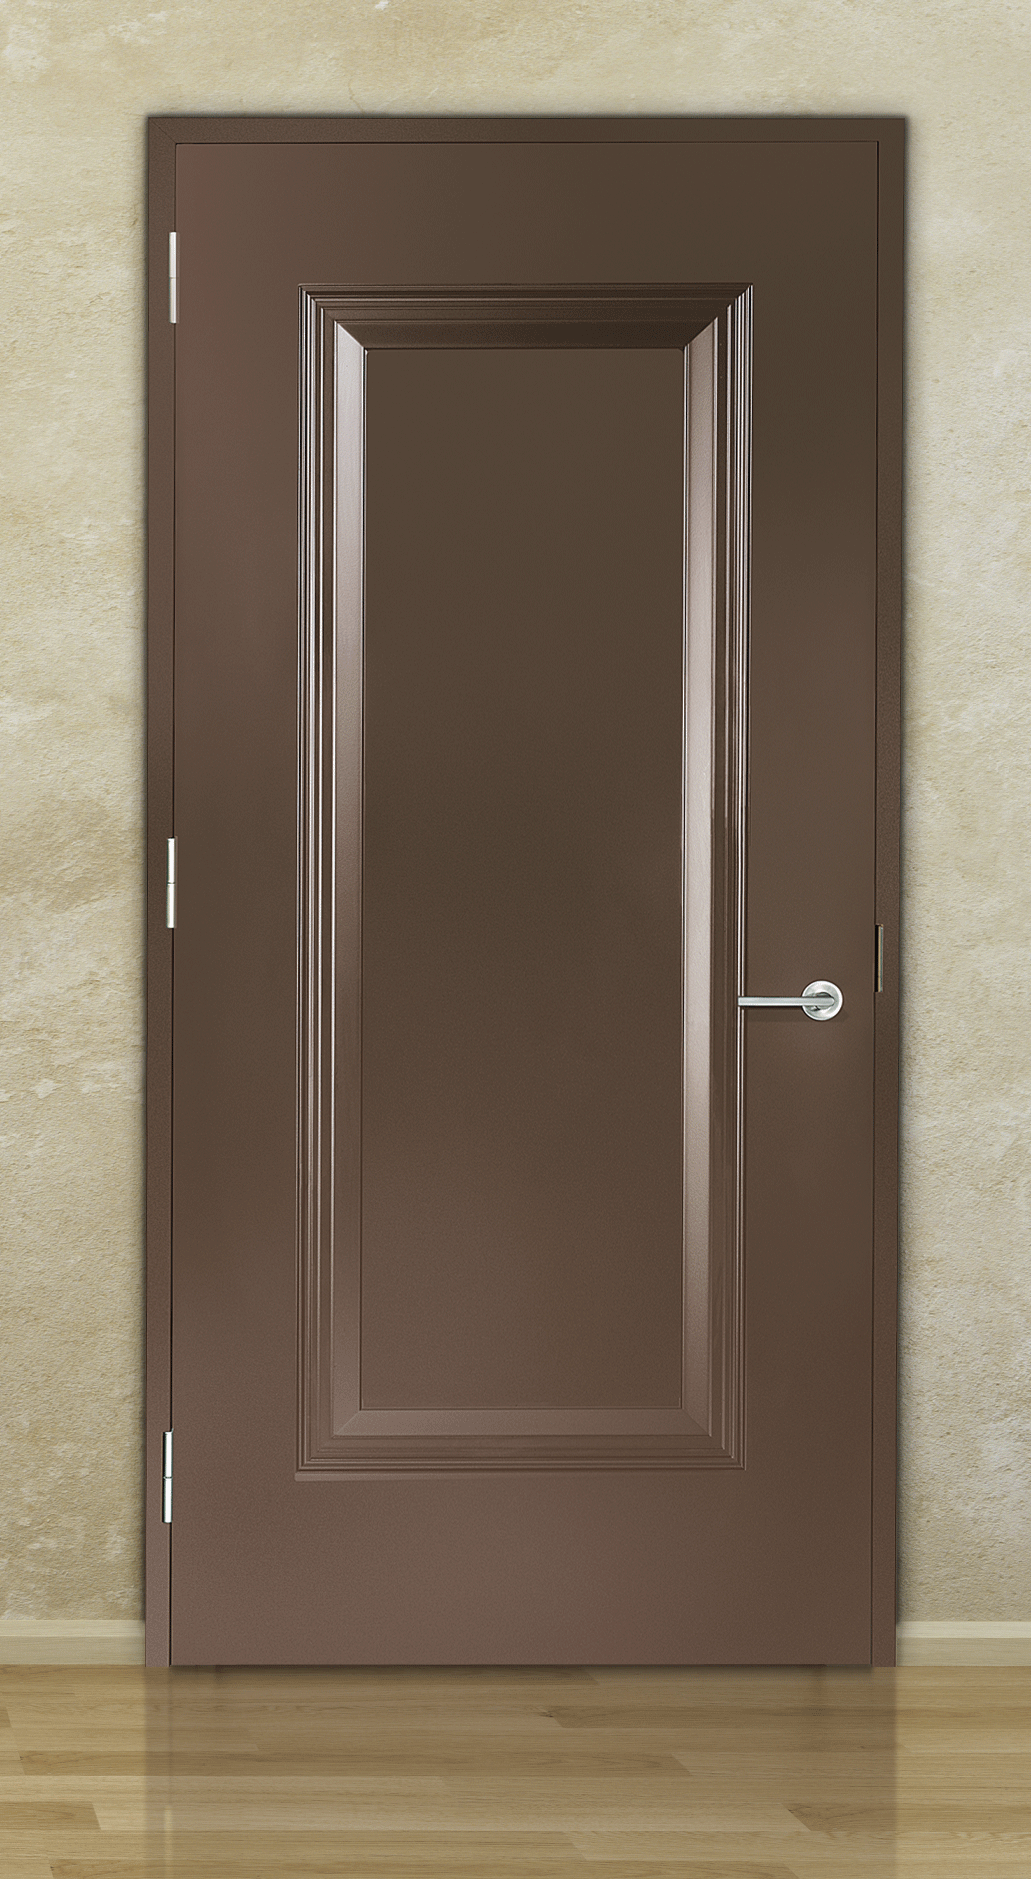 & High Definition Embossed Doors